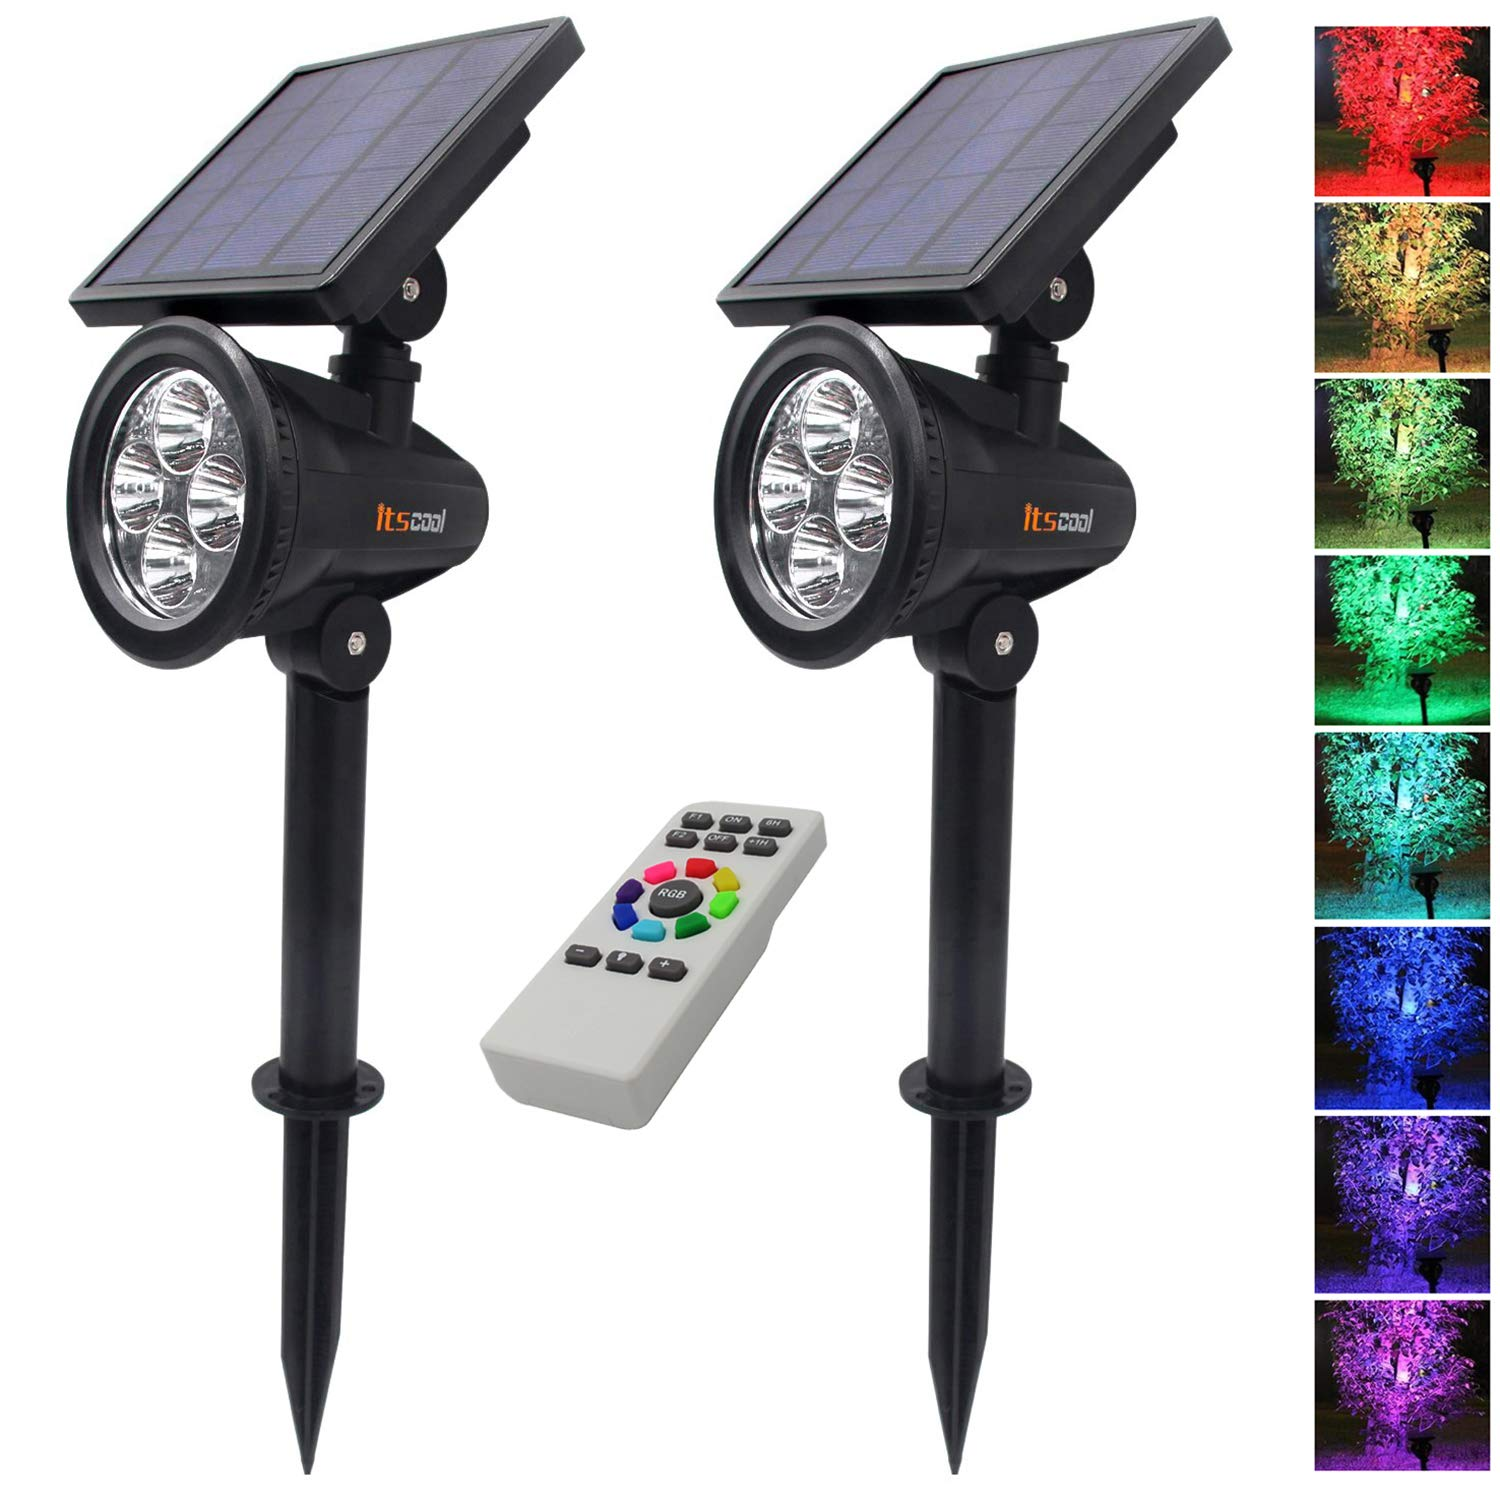 Itscool Solar Spotlight Outdoor Security Light, 9 Colors Auto-Shifting with Remote Control for Garden (Pack of 2)